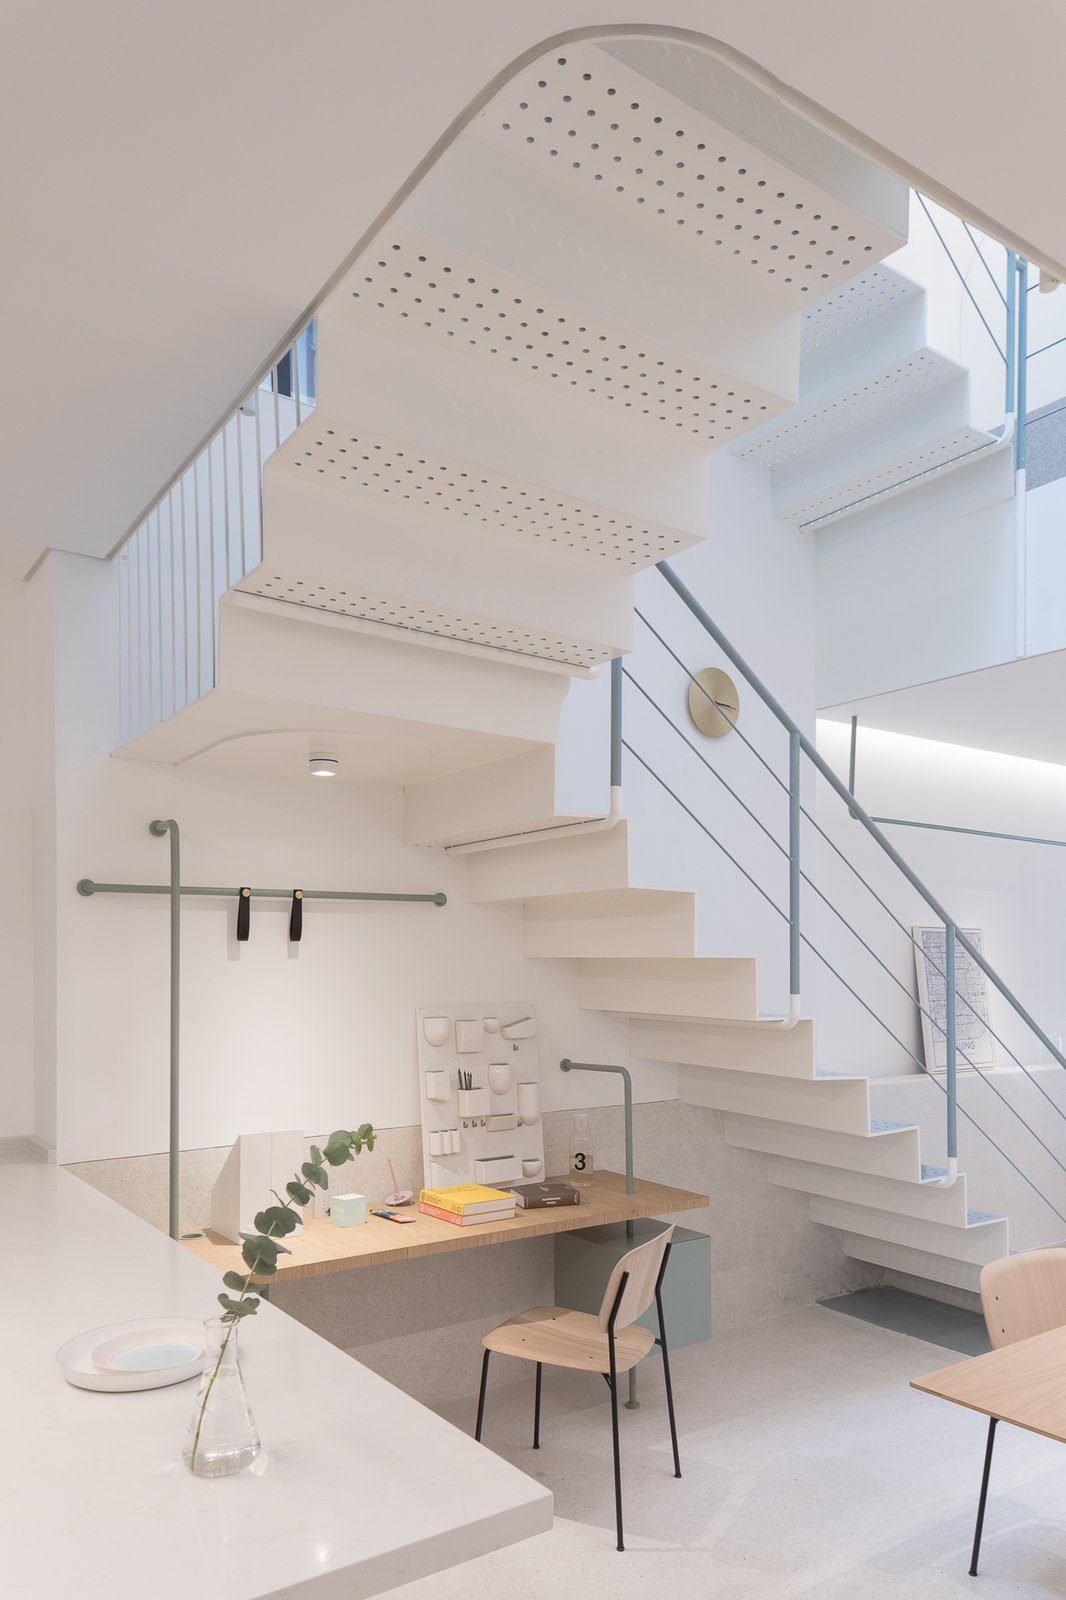 Office, Craft Room, Desk, Lamps, Chair, and Library Perforations in the steel tread of the staircase allow light from the skylight above to filter all the way down to the lower levels.  Best Office Lamps Library Photos from A Sunny Stairwell Brings Light to an Old Shanghai Dwelling